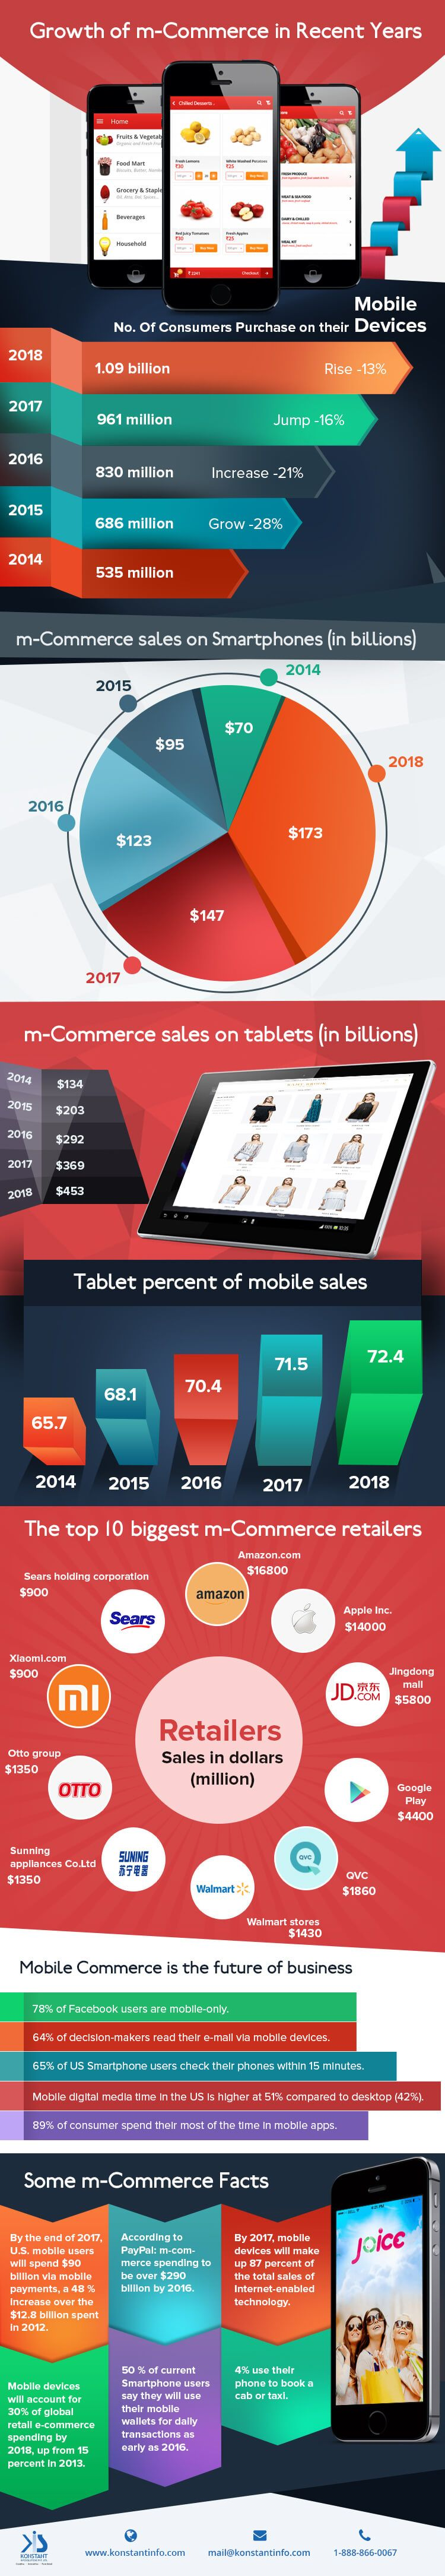 M-Commerce Growth Stats in Recent Years